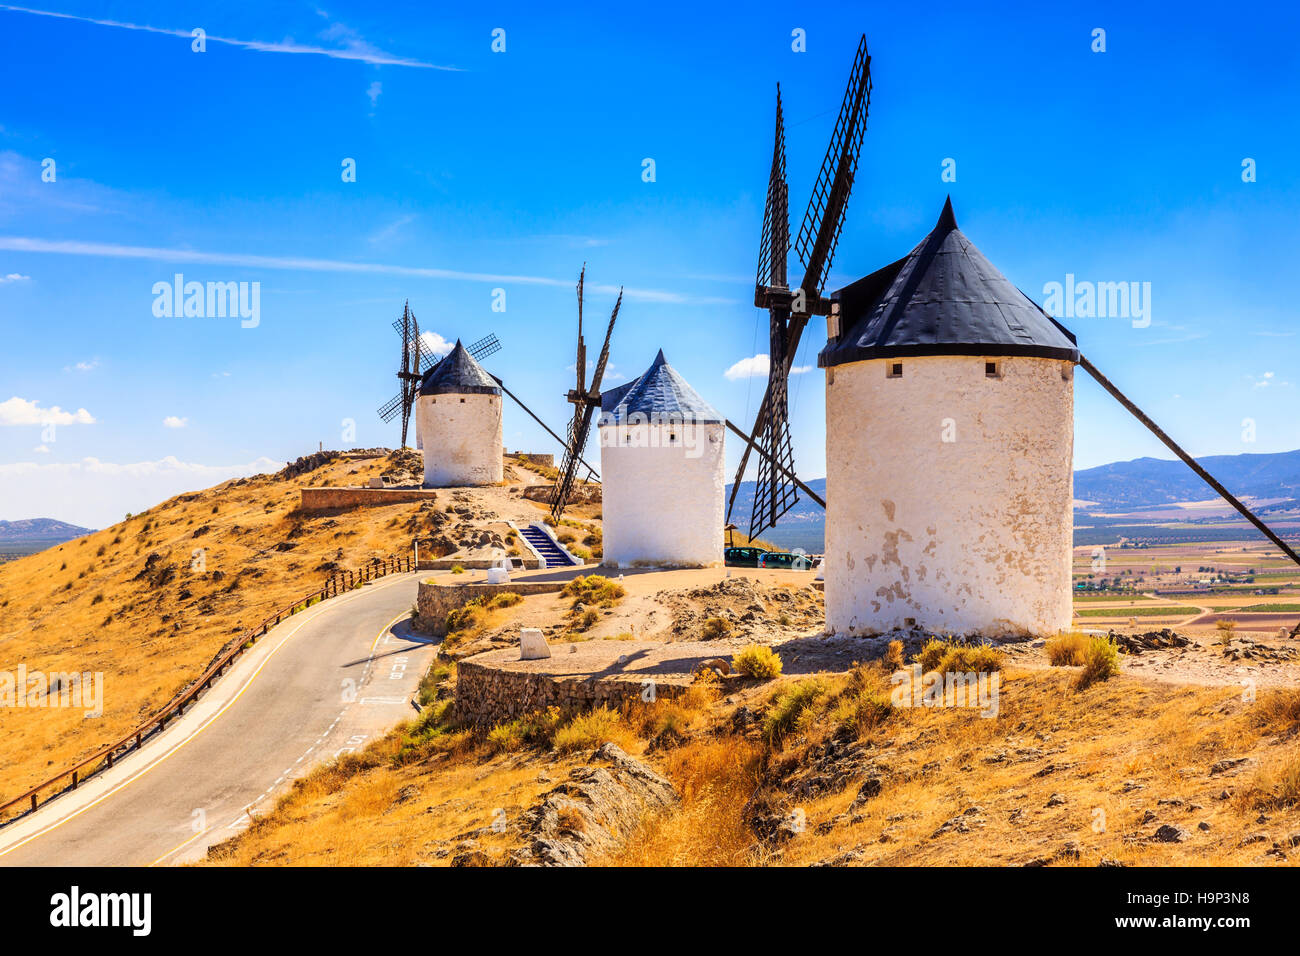 Consuegra, Spain. Windmills of Don Quixote in Toledo province. - Stock Image